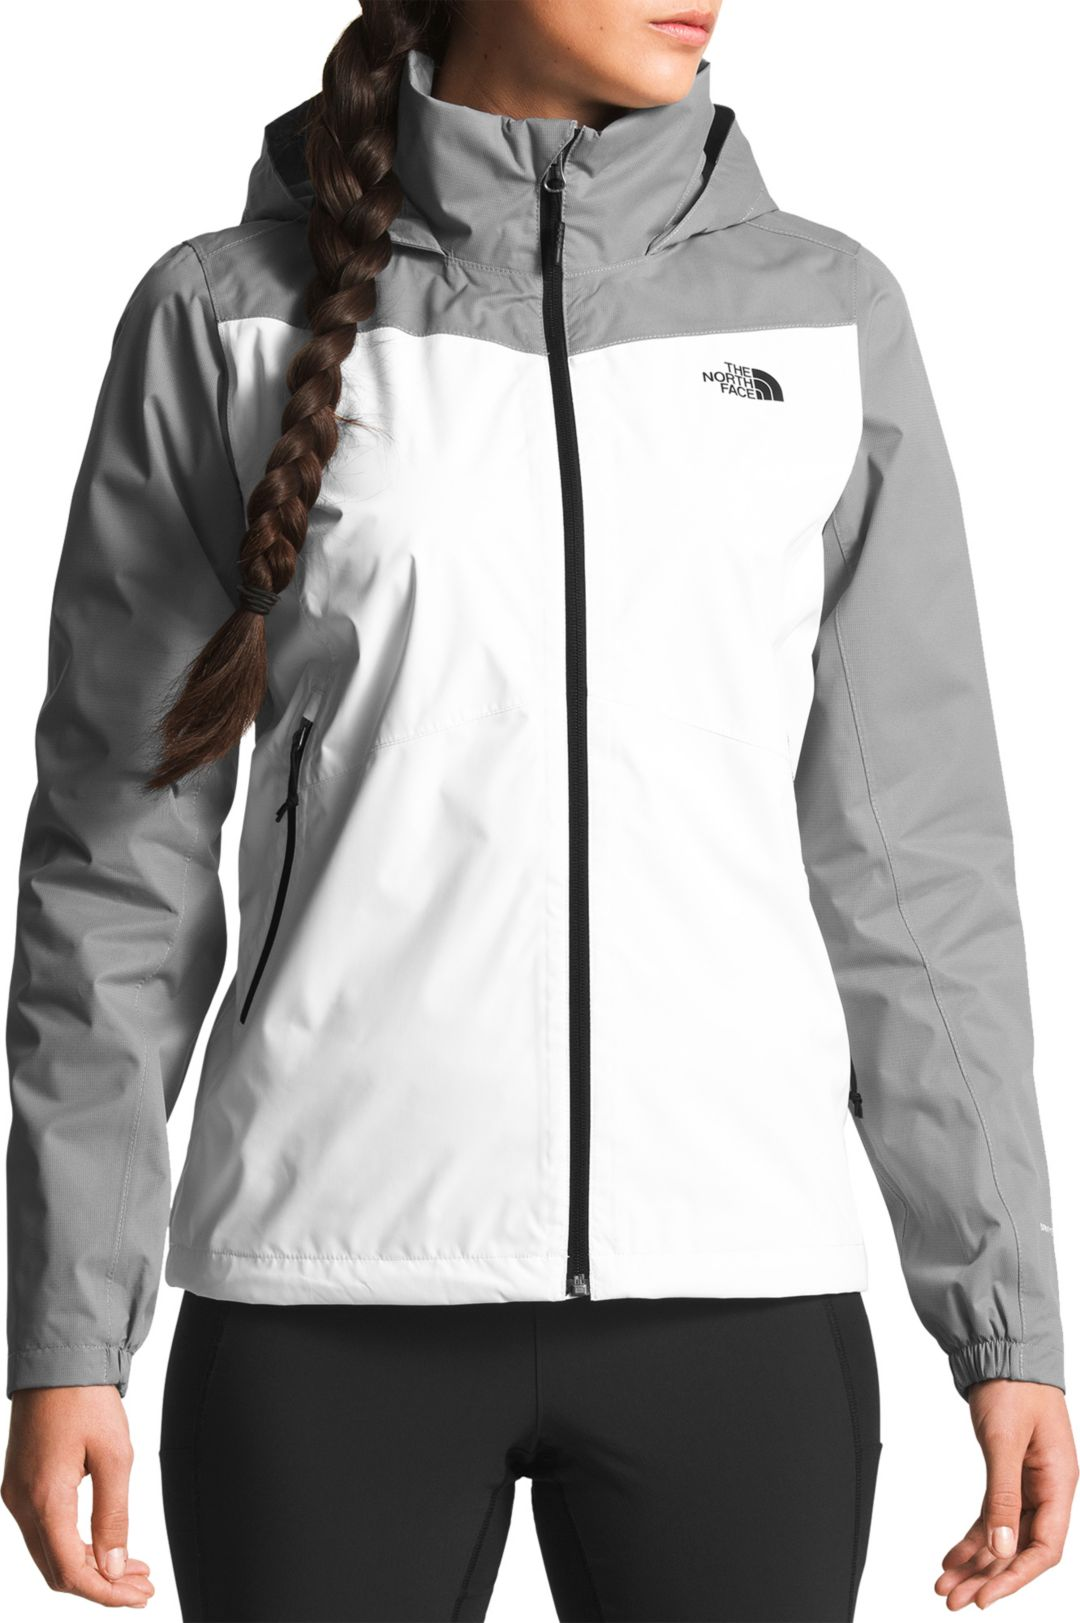 509ce3223 The North Face Women's Resolve Rain Jacket